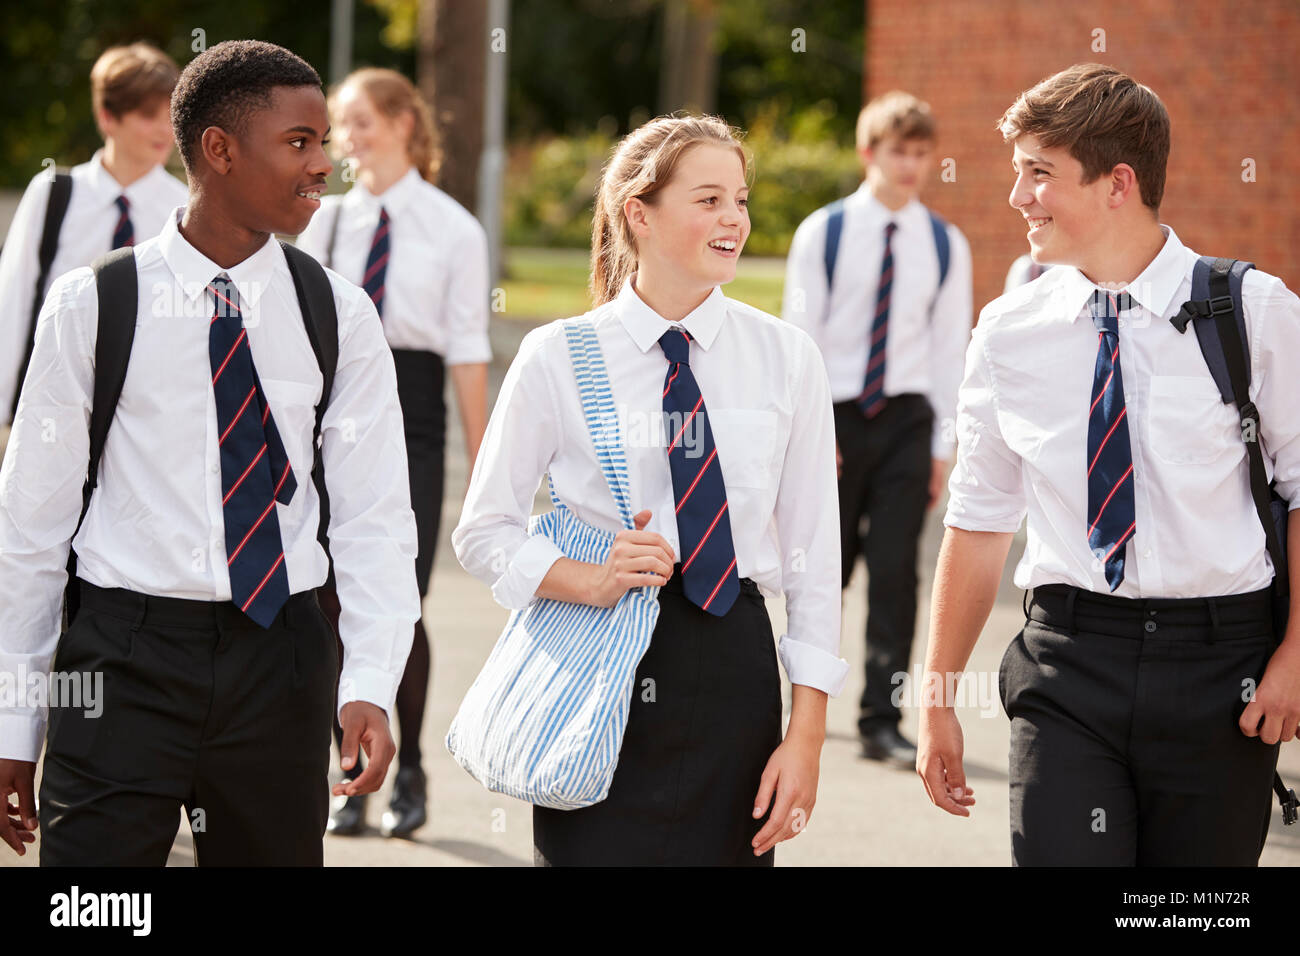 Group Of Teenage Students In Uniform Outside School Buildings - Stock Image